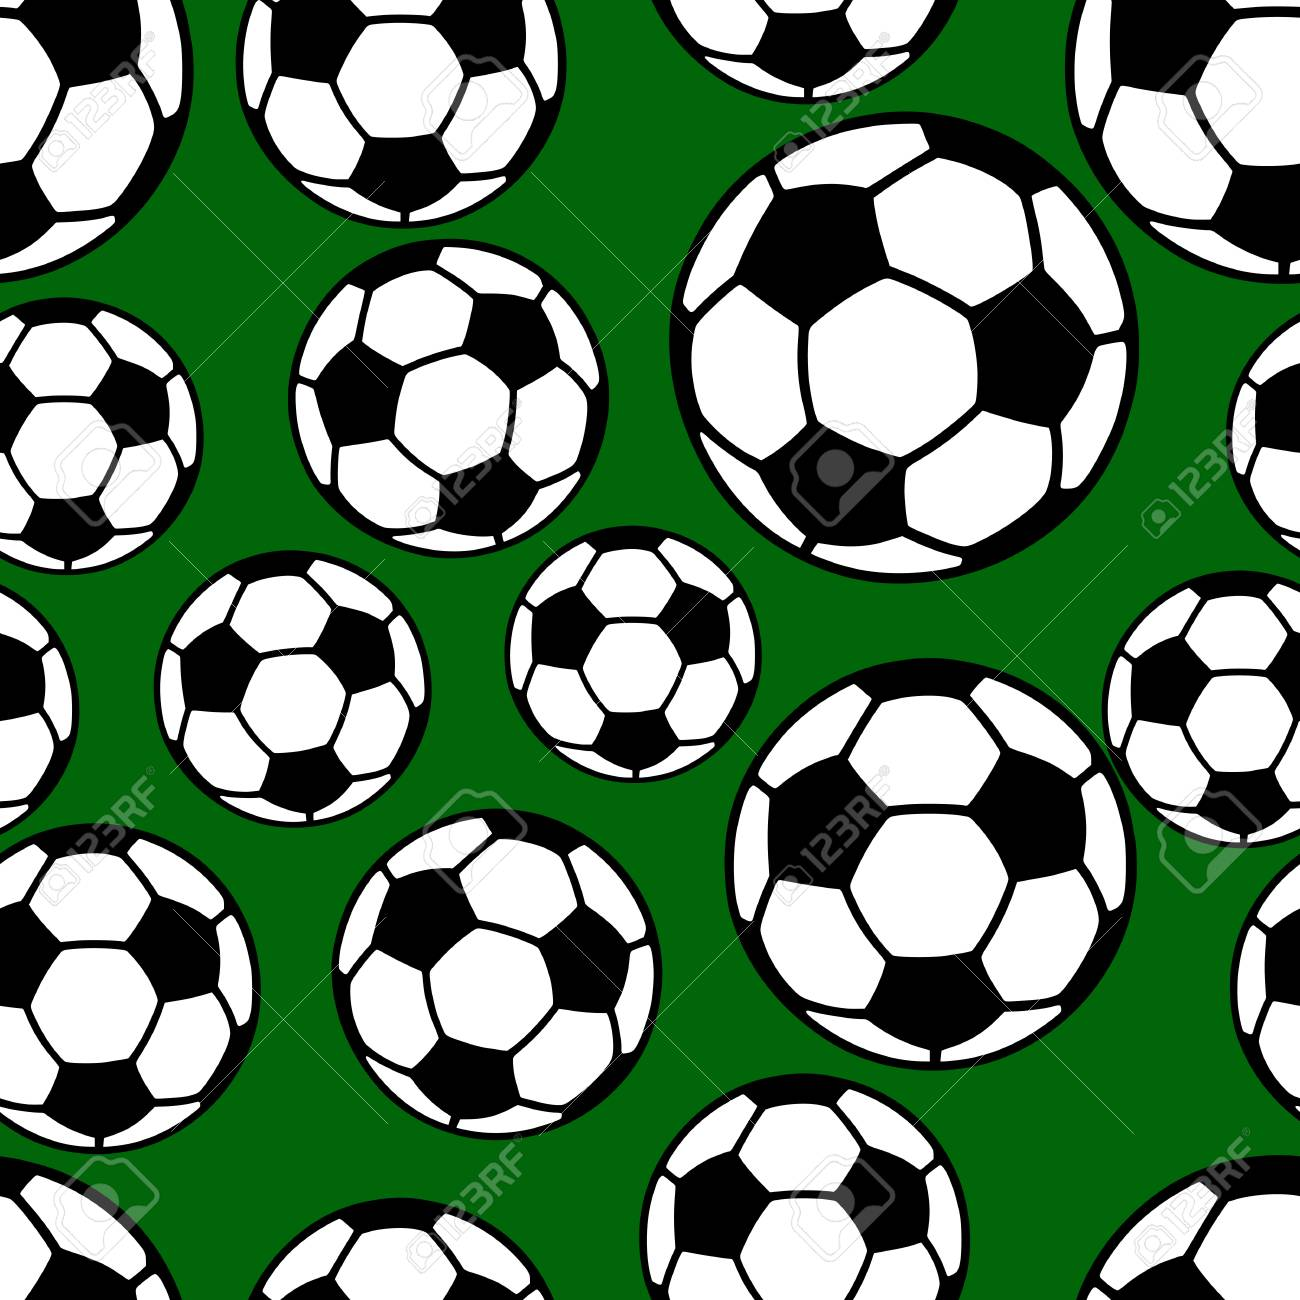 Soccer Ball Seamless Pattern Football Background Flat Style Royalty Free Cliparts Vectors And Stock Illustration Image 100757927